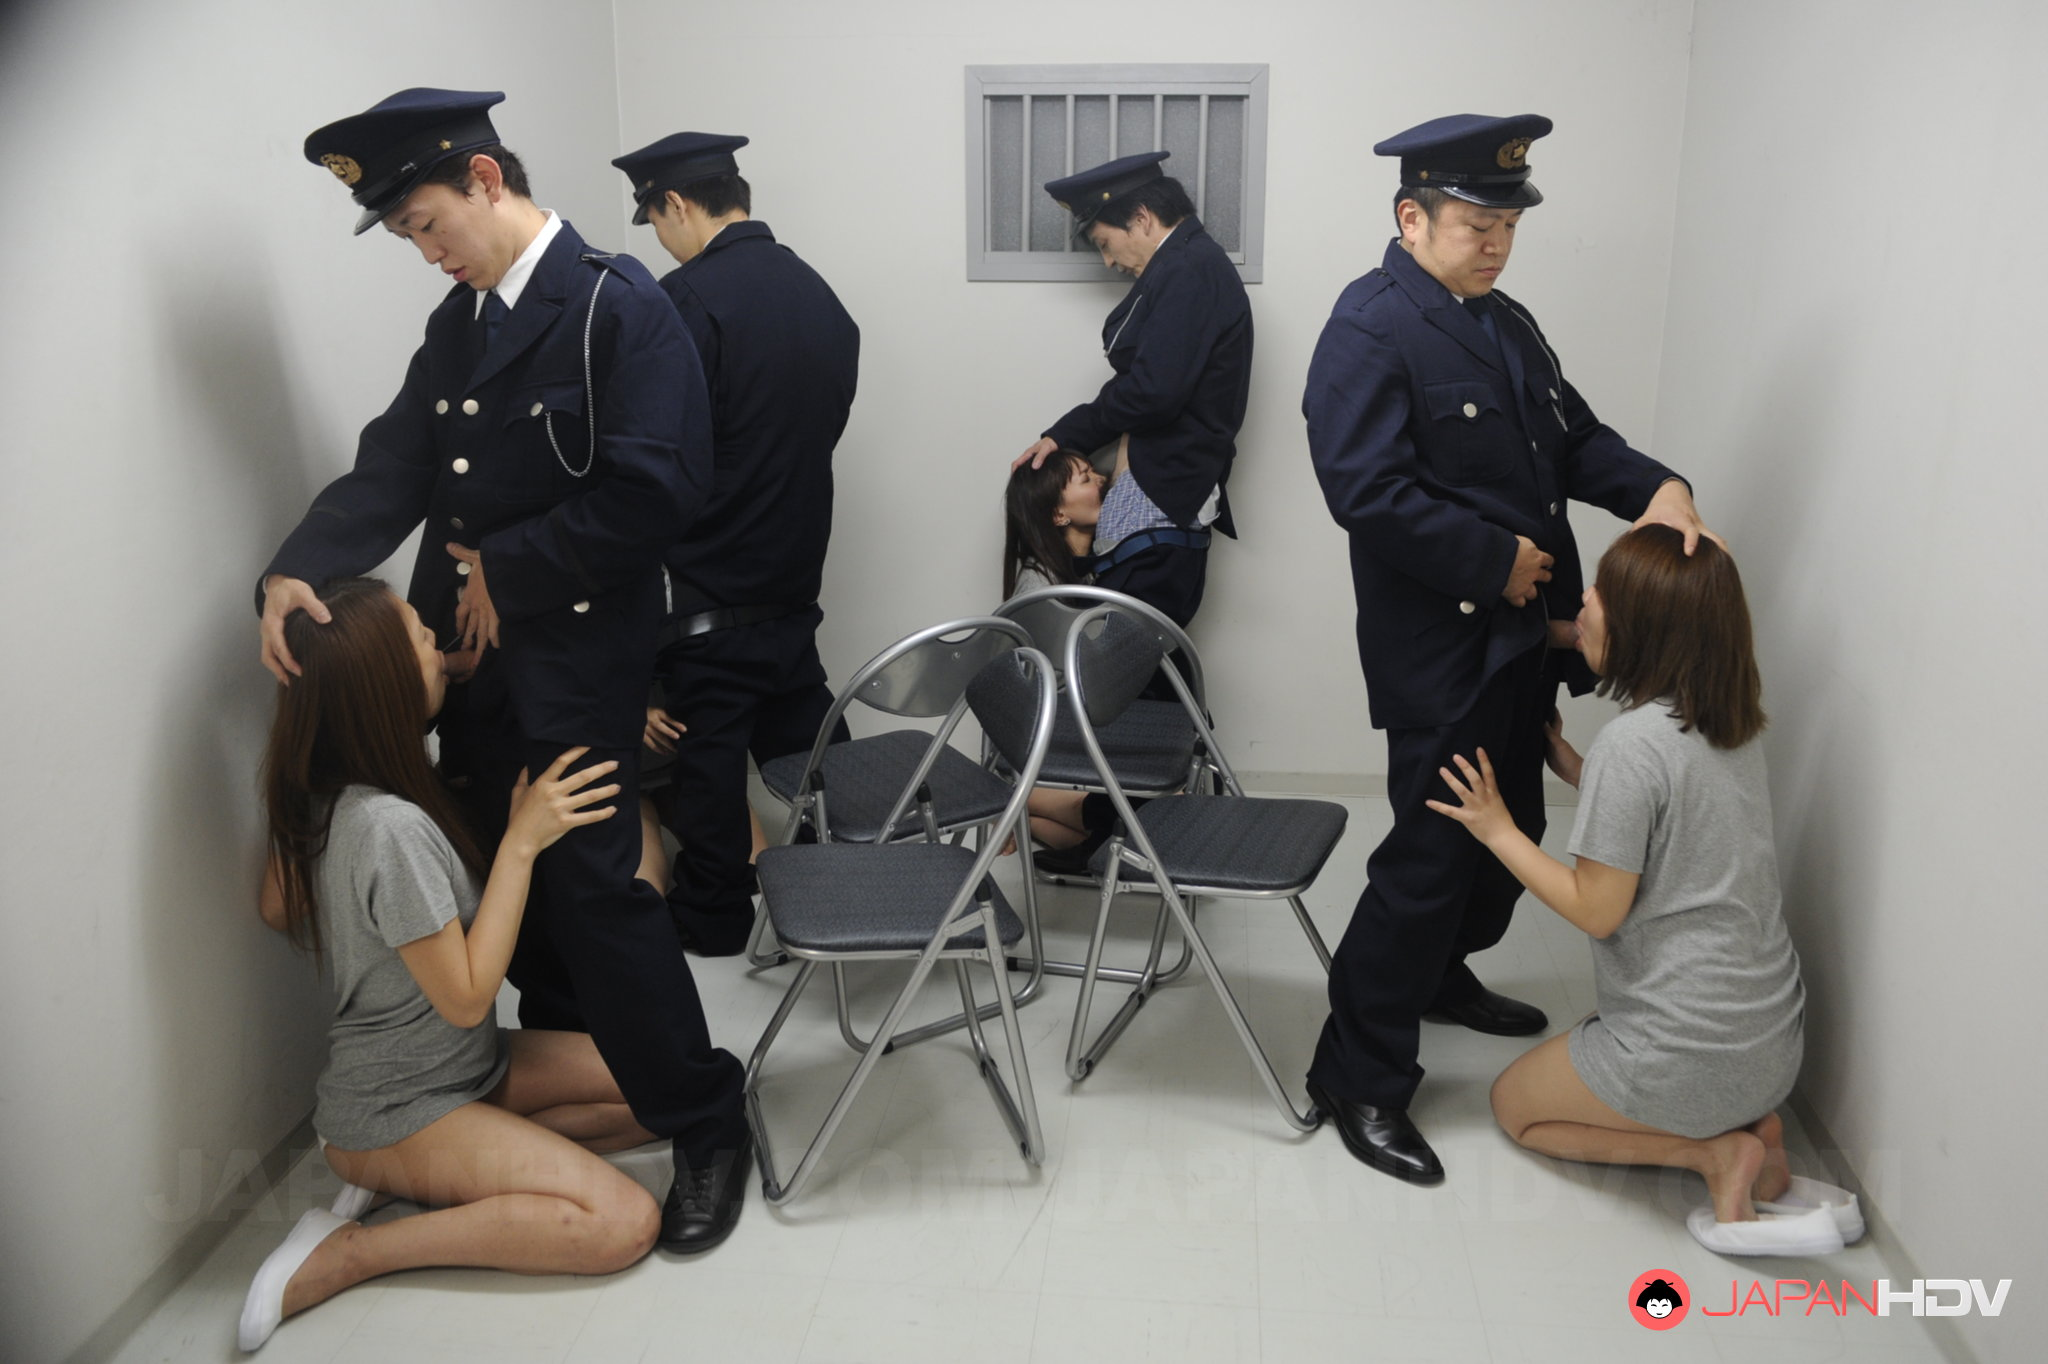 Super Hot Asian Sex Orgy In The Prison Cell Japan Hdv